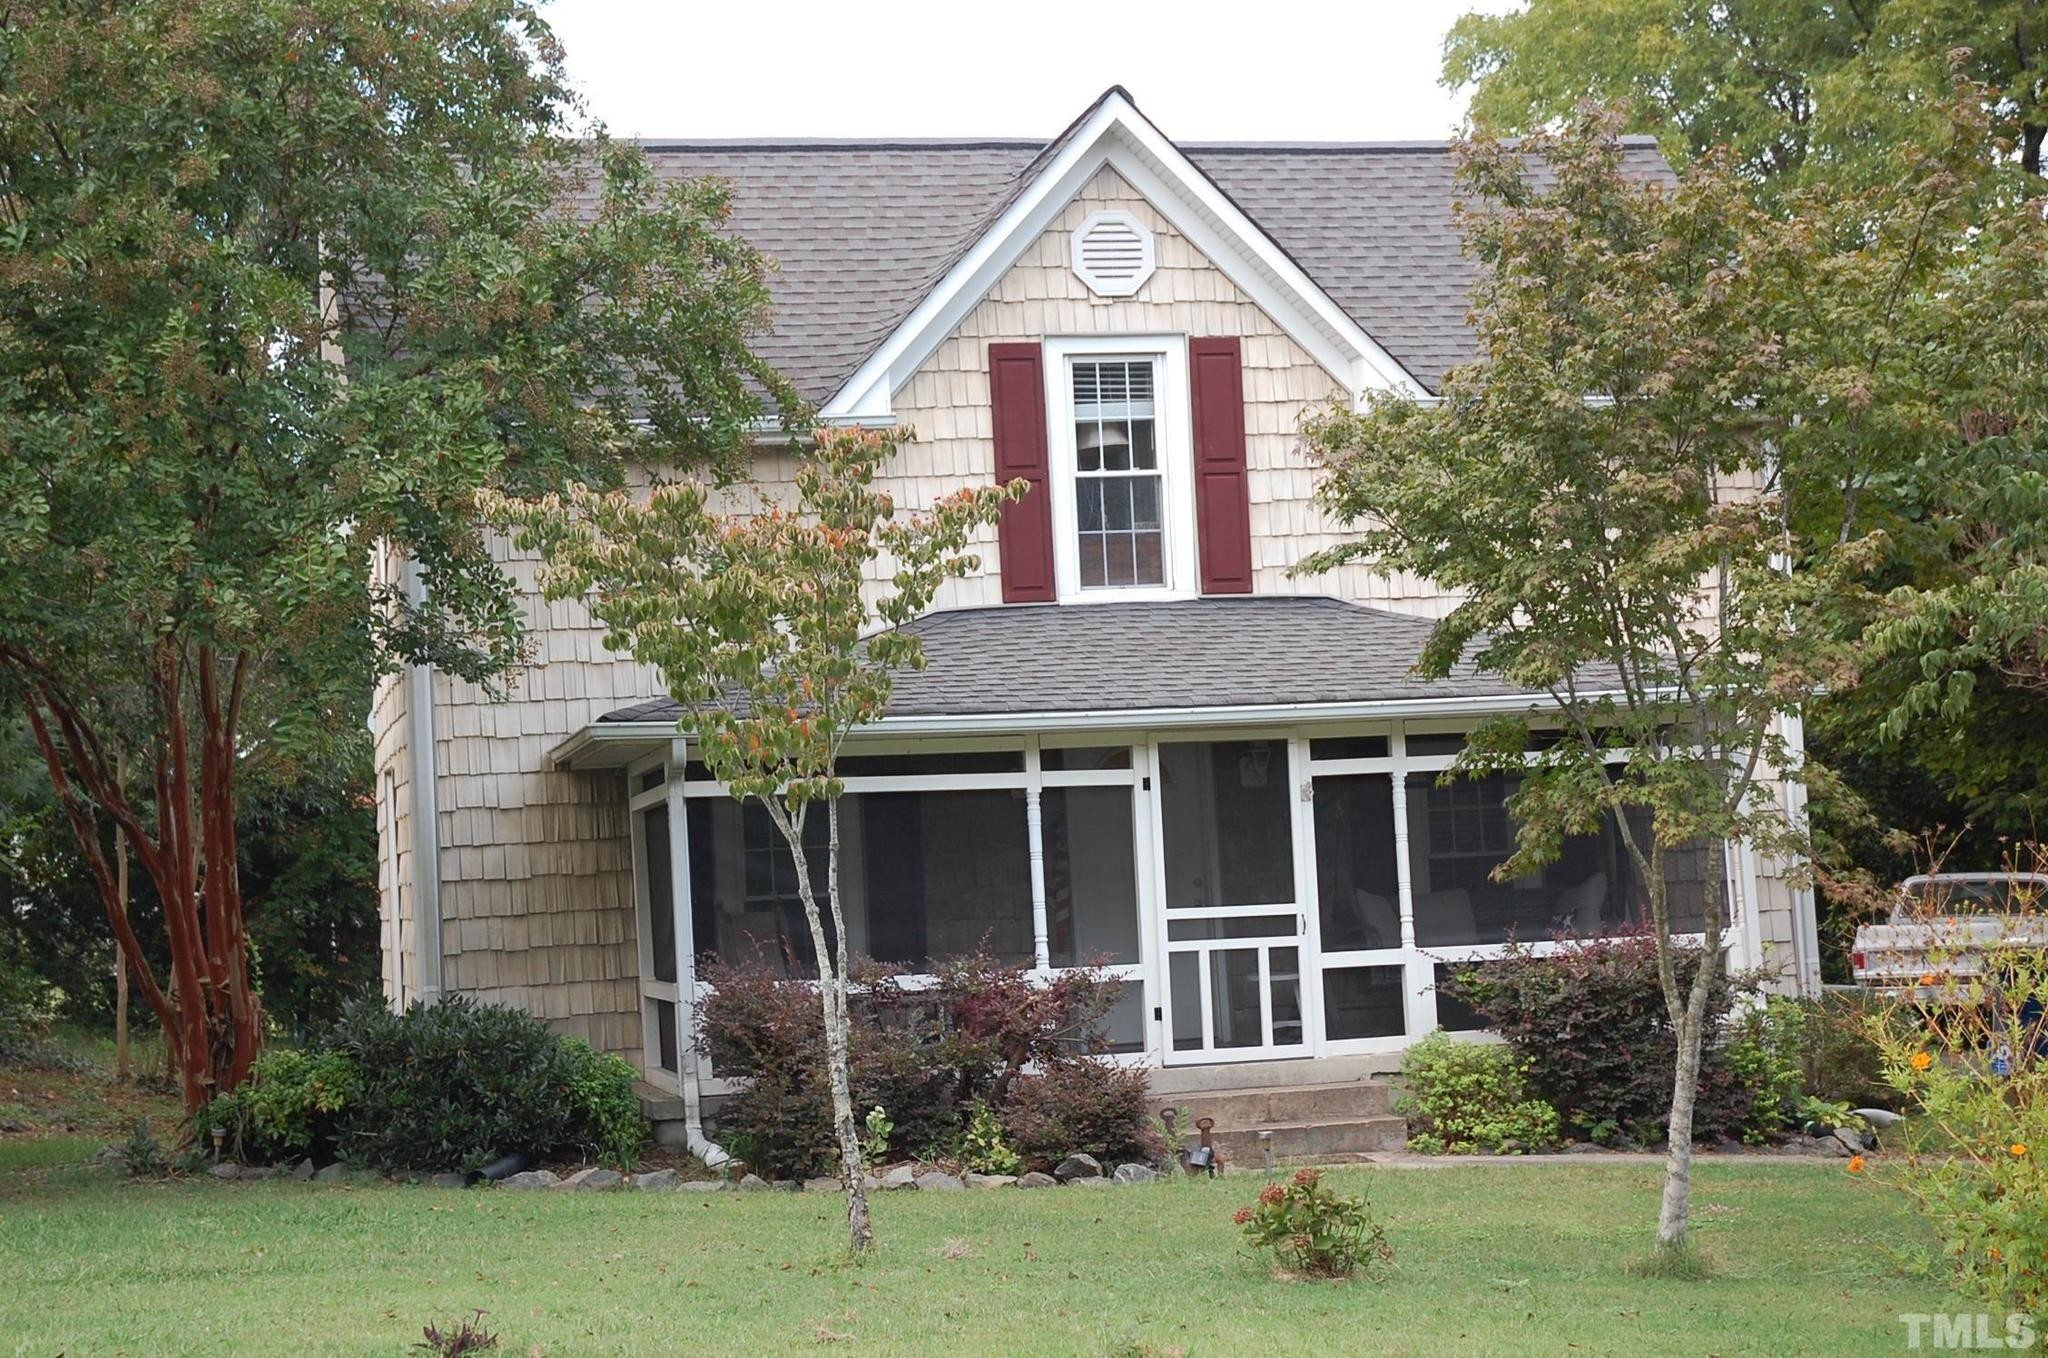 3-Bedroom House In Downtown Gisbsonville